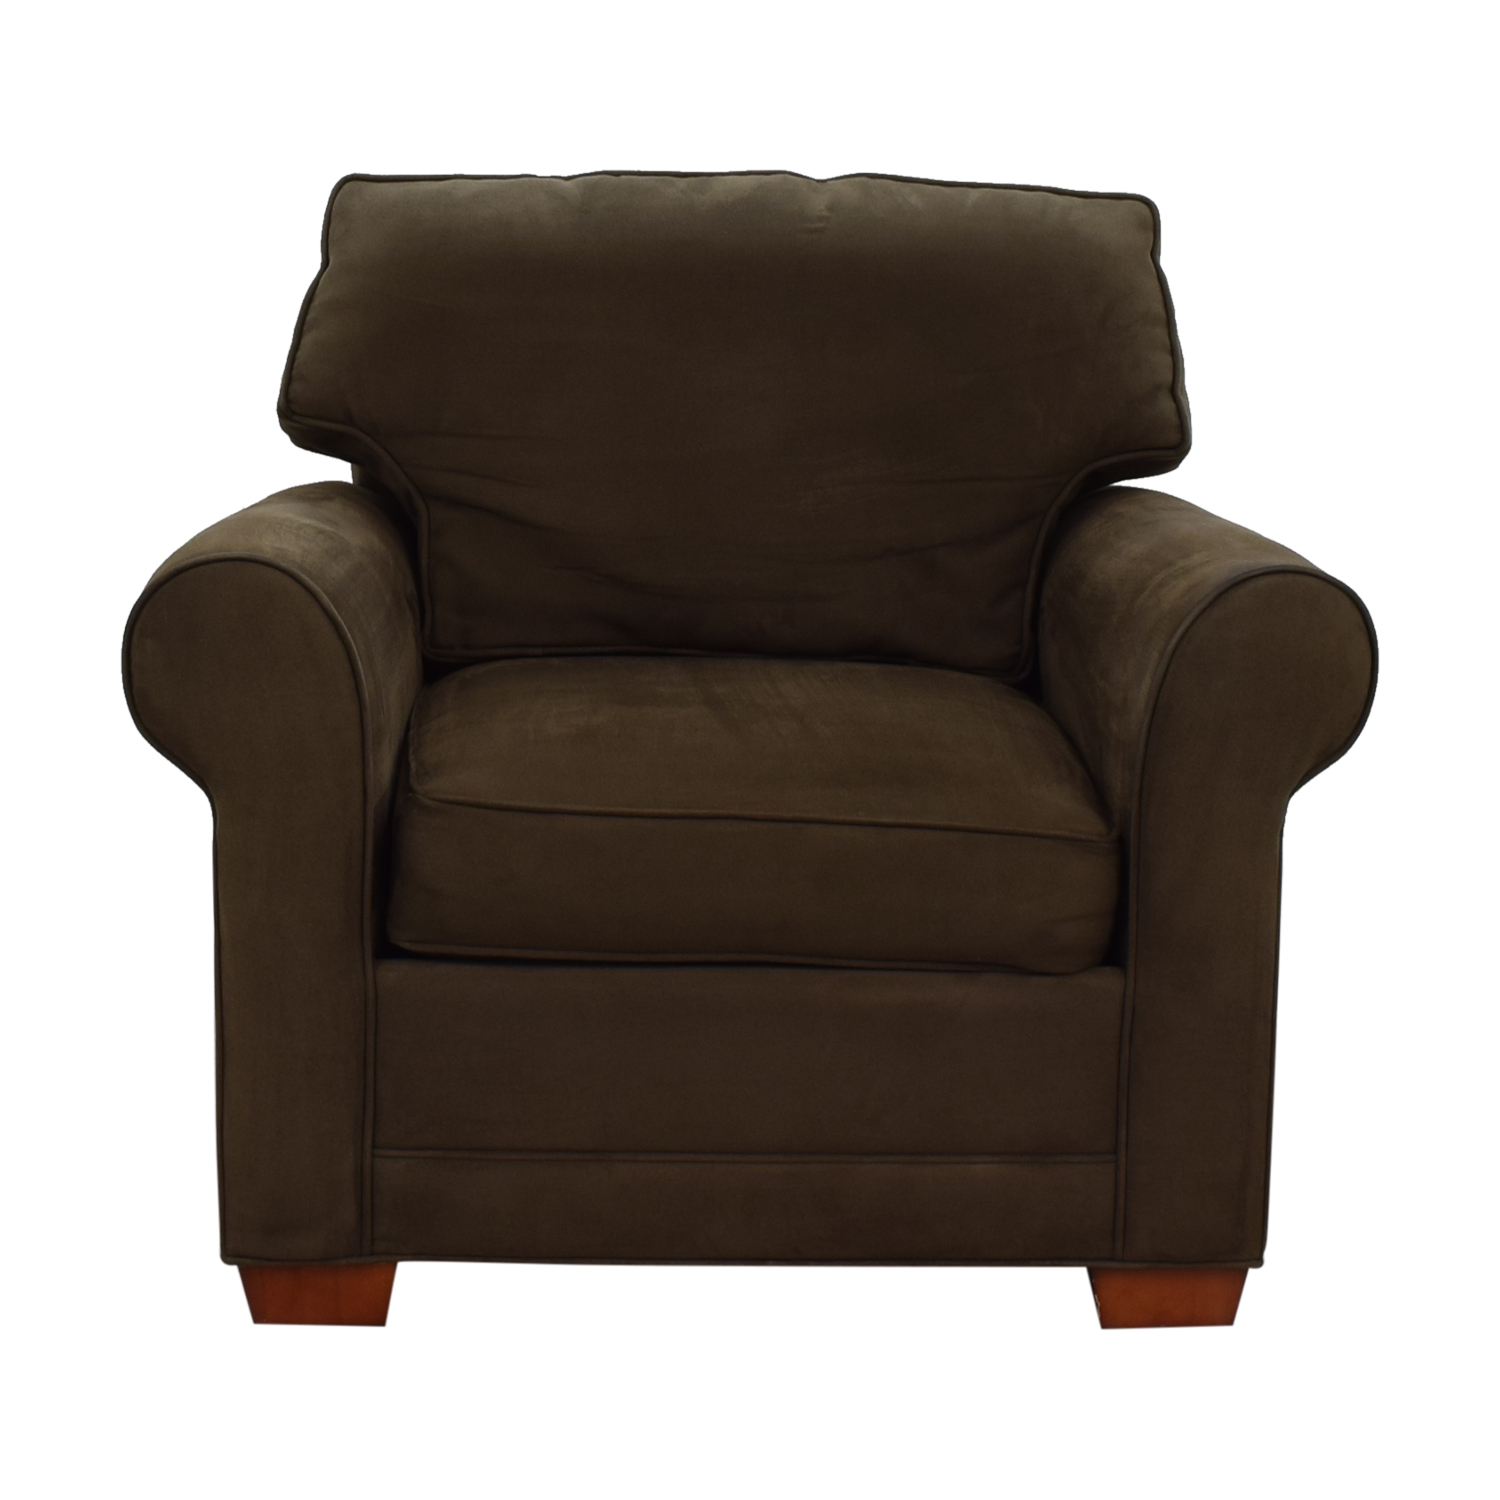 Raymour & Flanigan Brown Microfiber Accent Chair Raymour & Flanigan